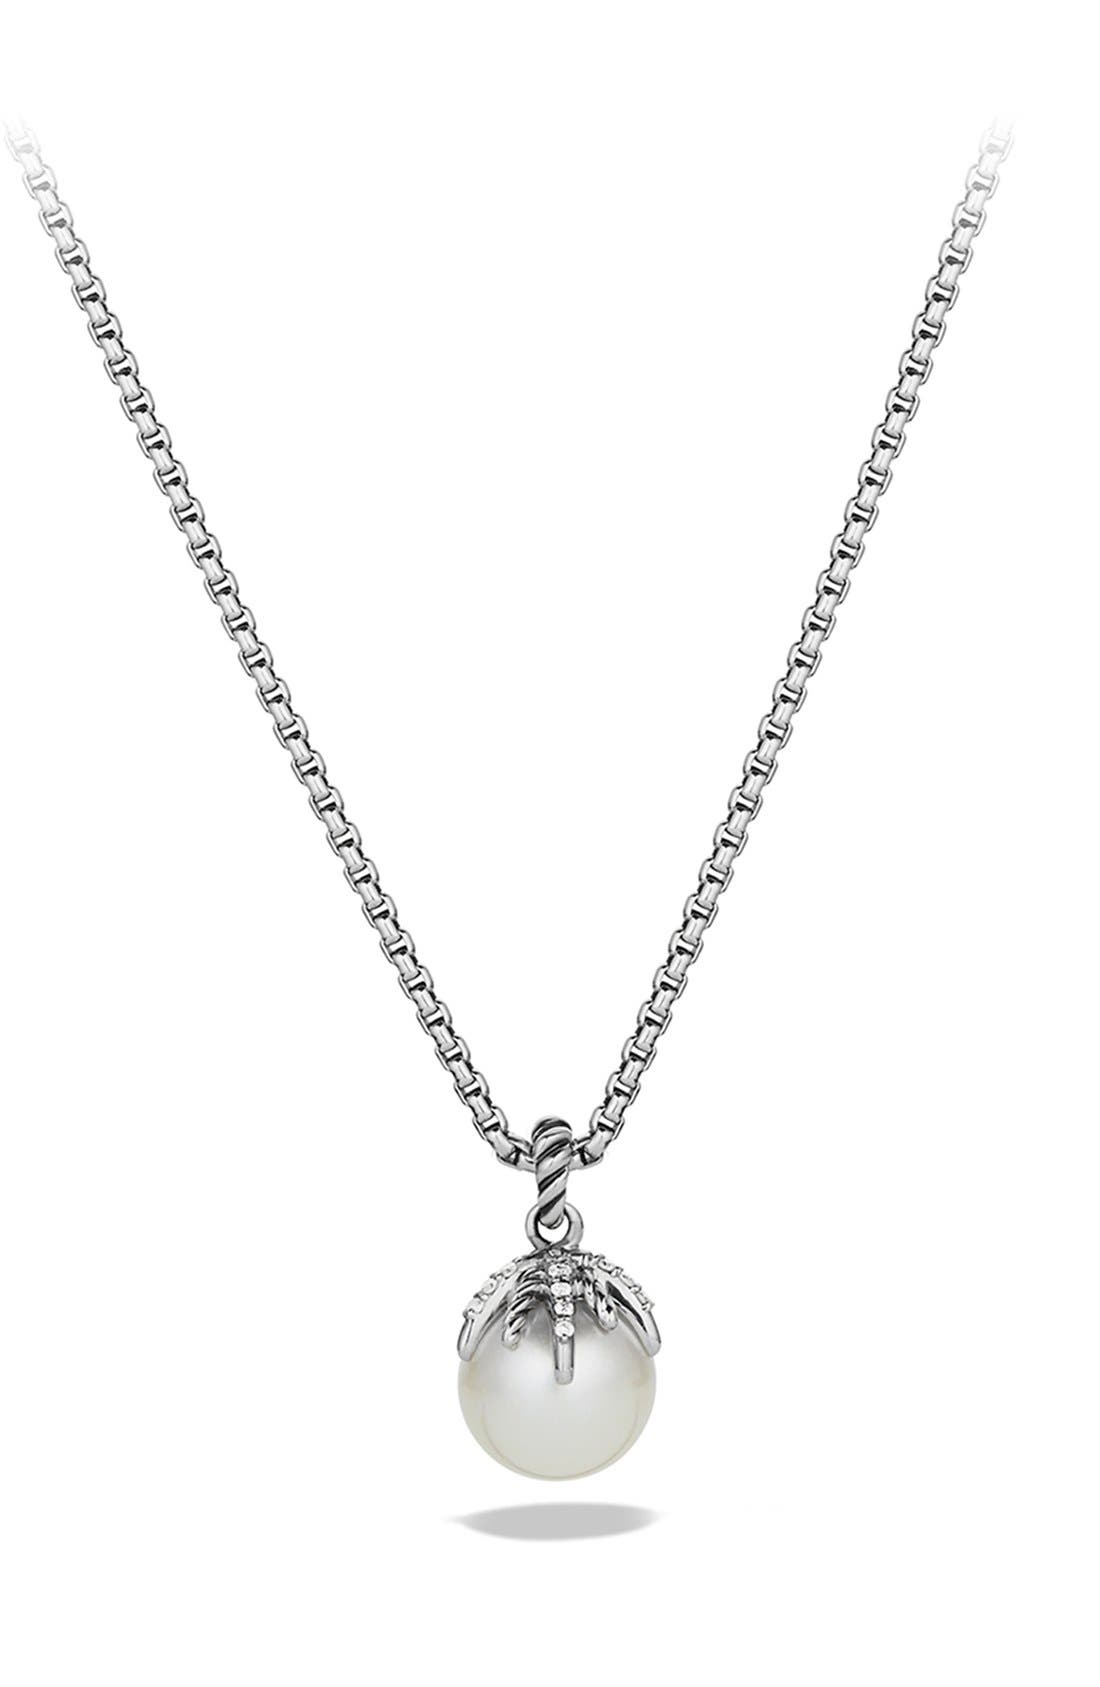 'Starburst' Pearl Pendant with Diamonds on Chain,                             Main thumbnail 1, color,                             101